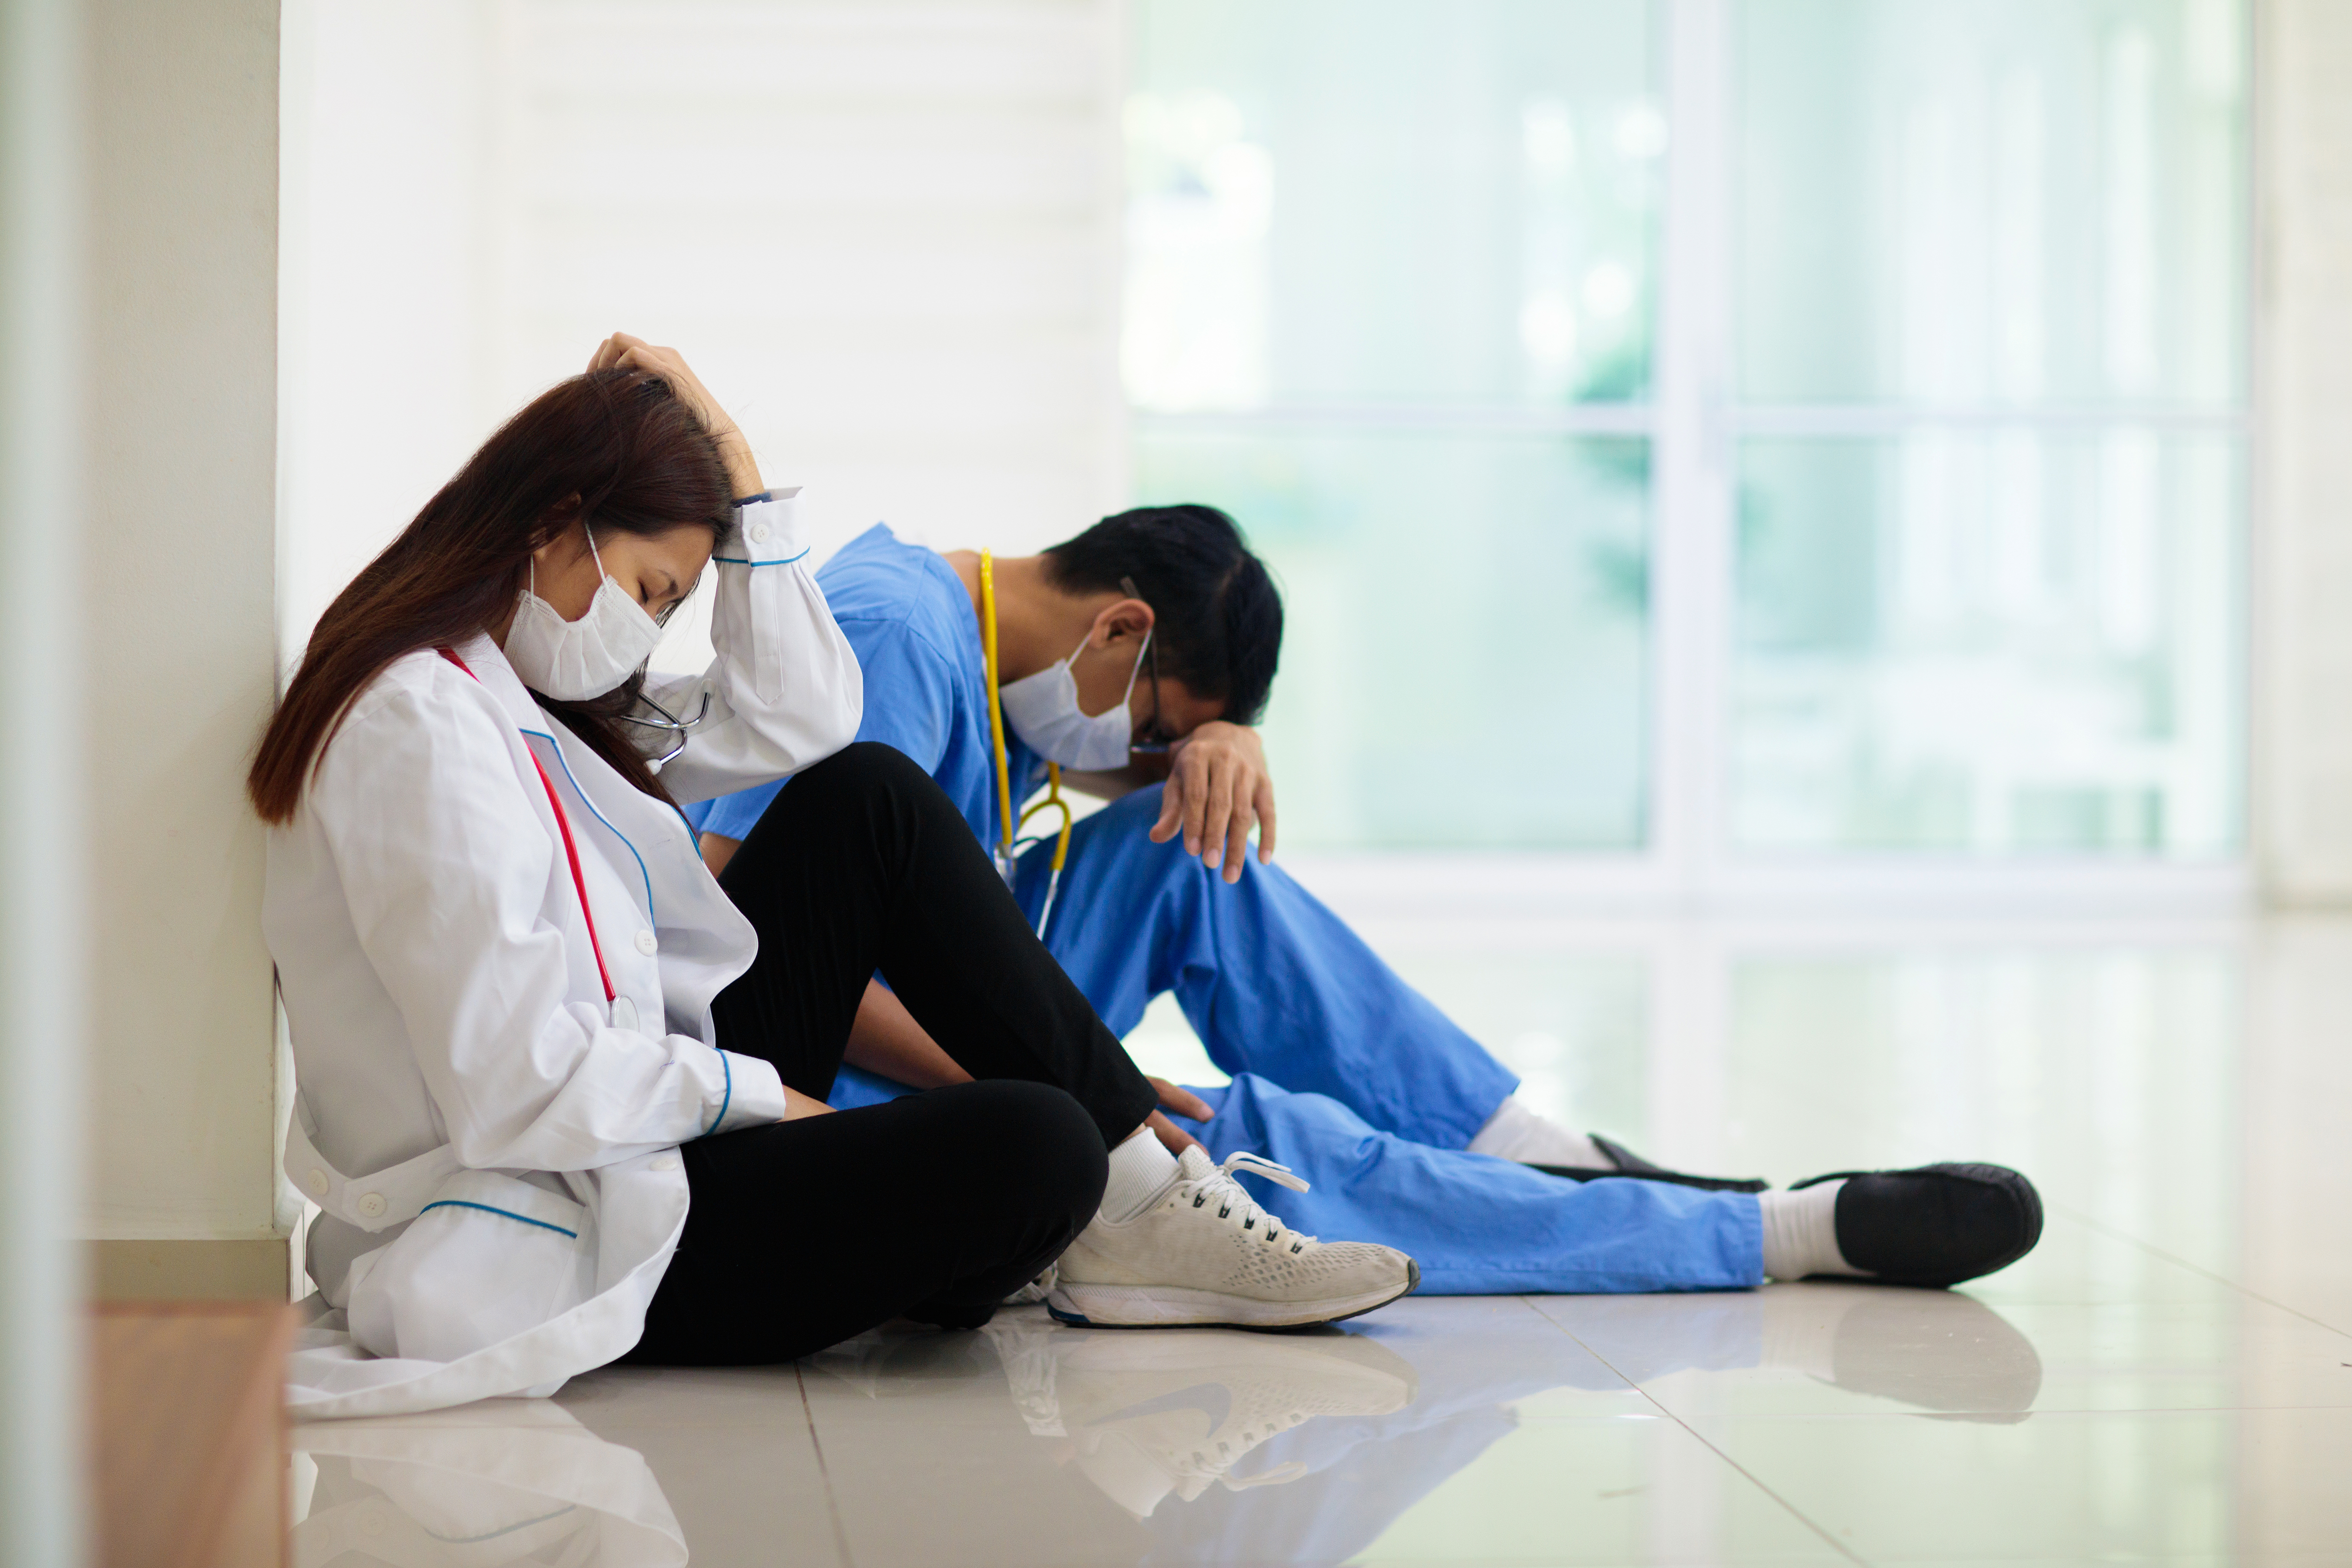 Exhausted Doctors